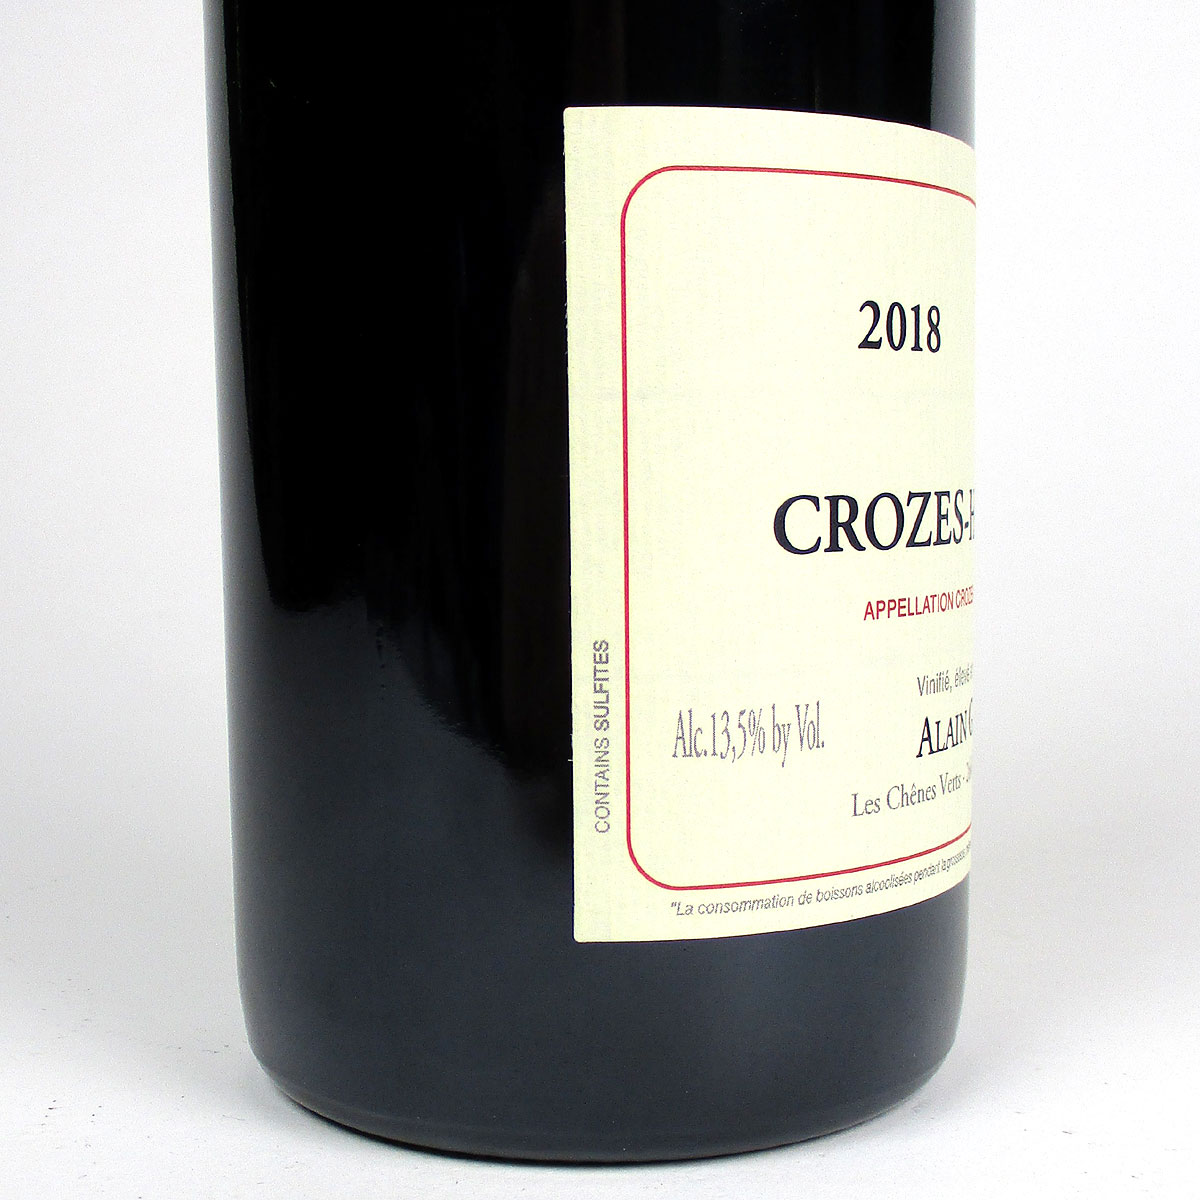 Crozes Hermitage Rouge: Alain Graillot 2018 - Bottle Side Label